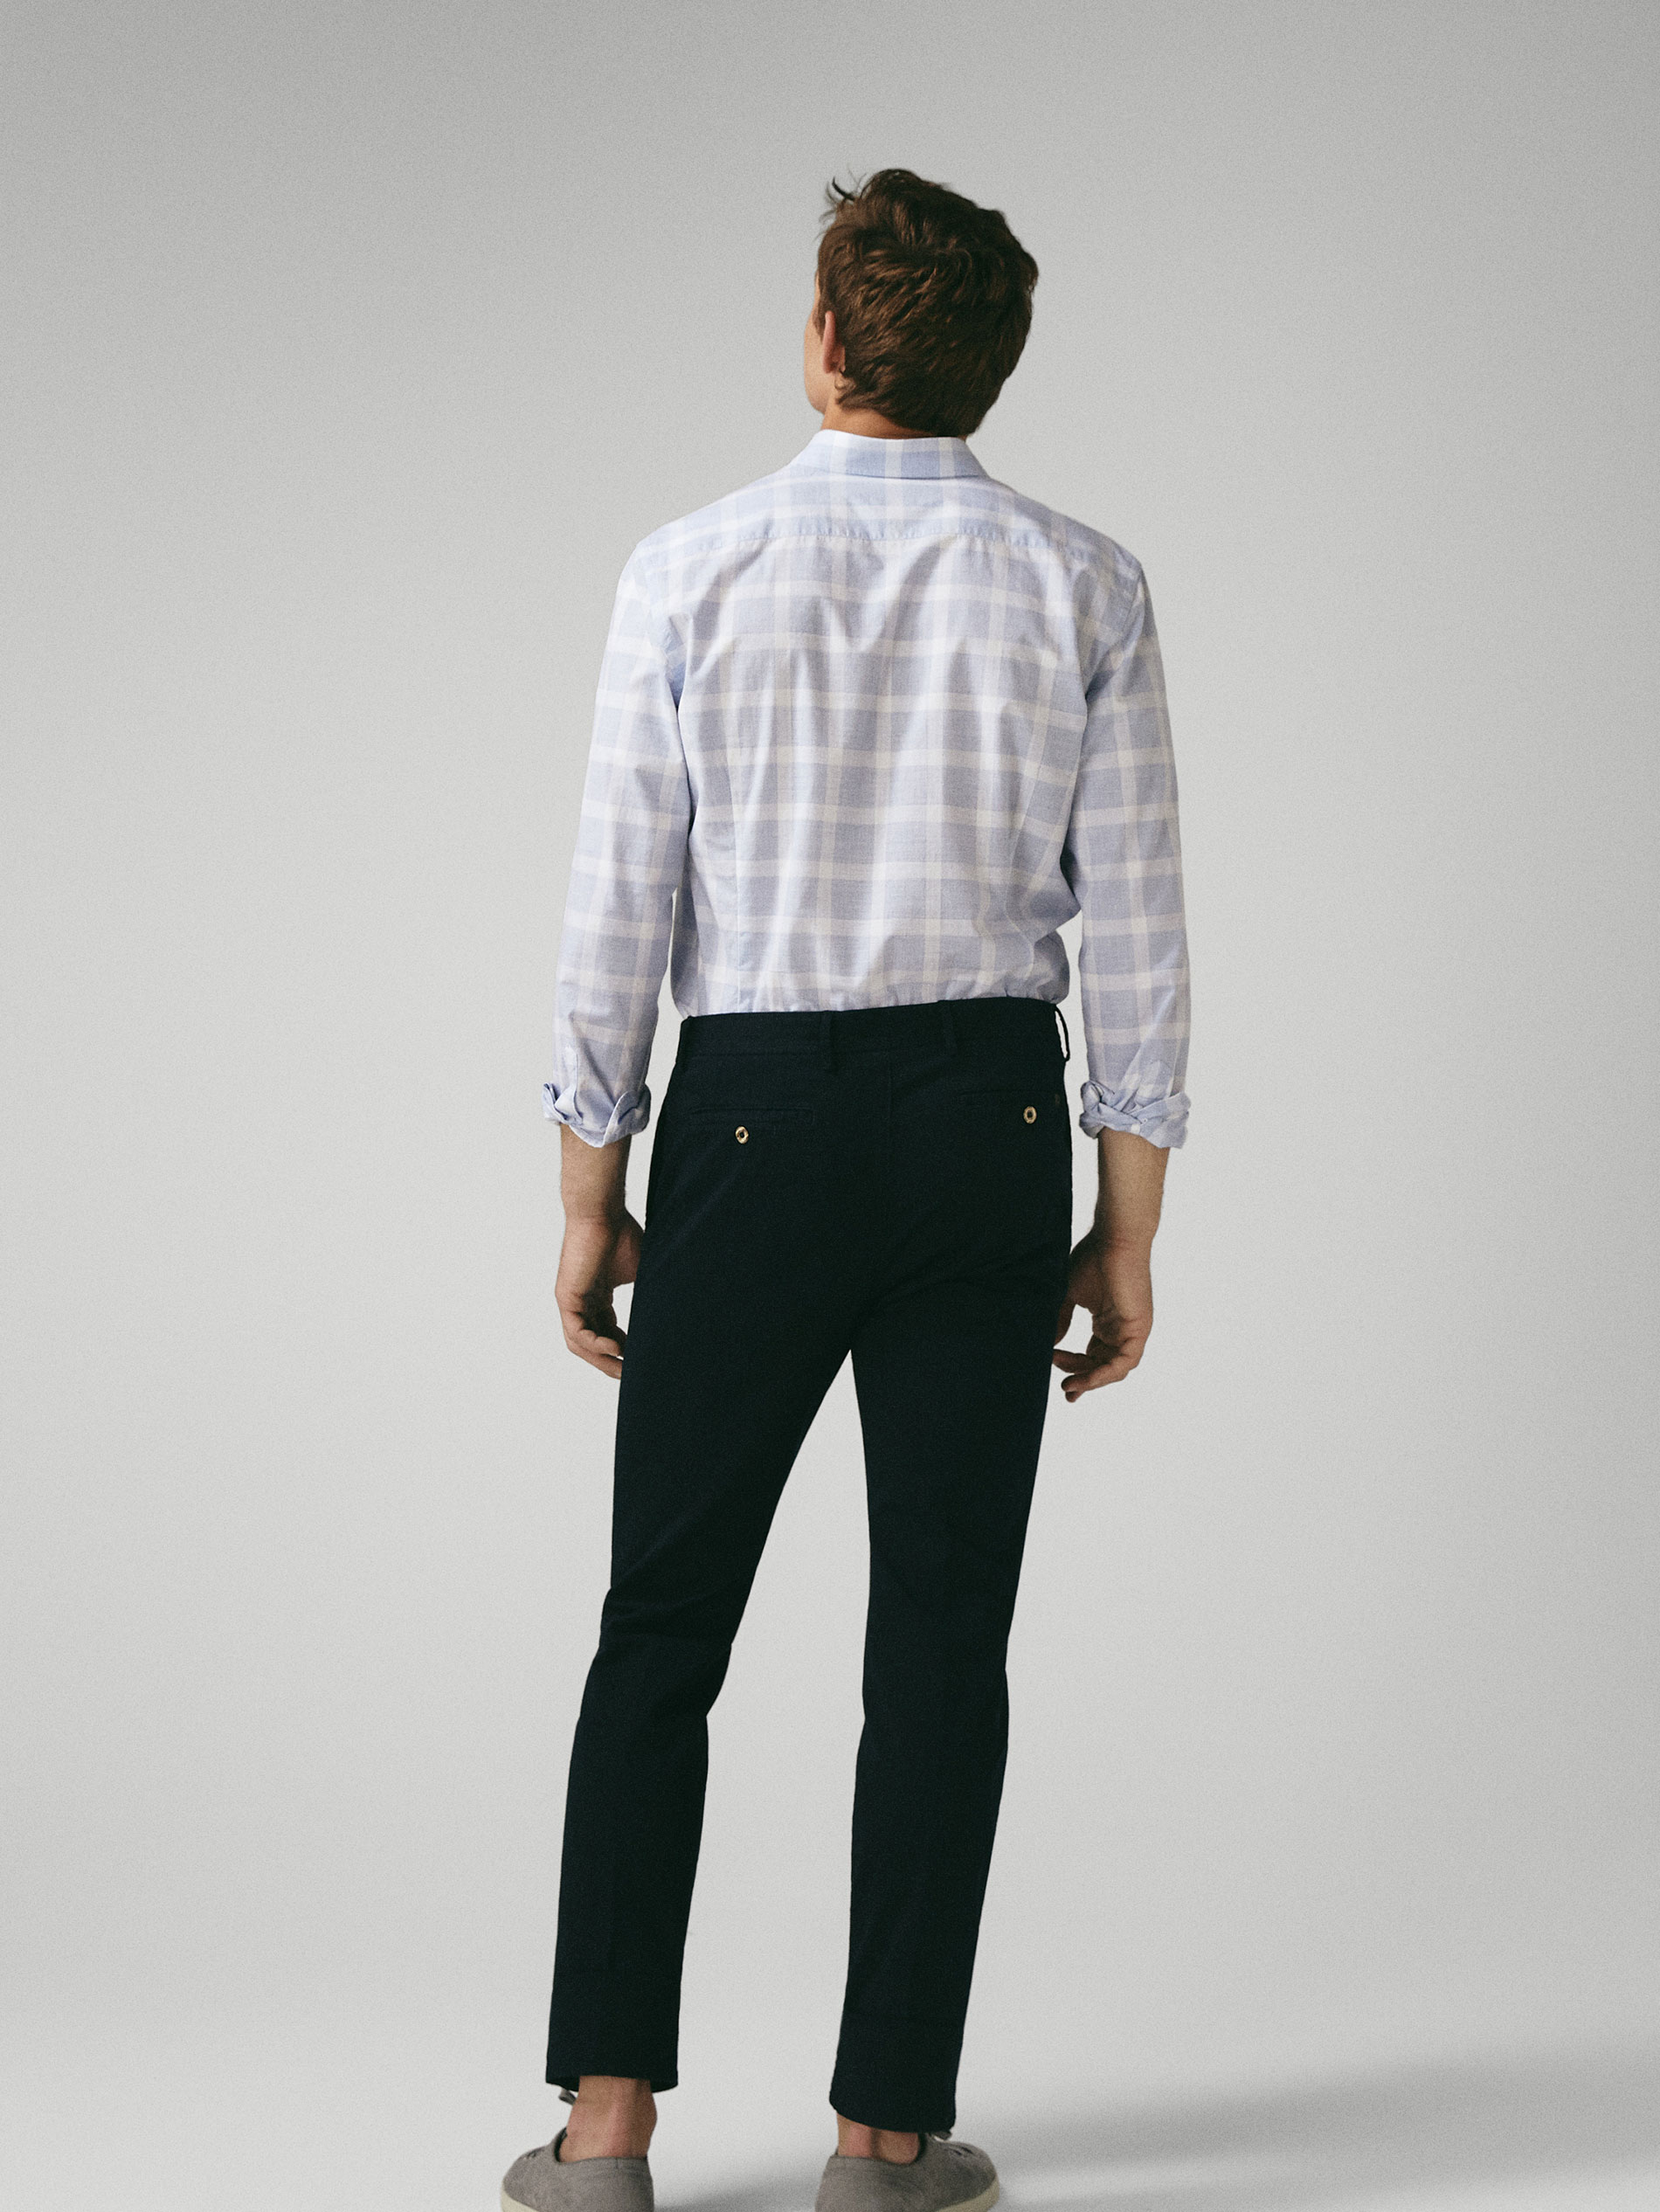 Regular Chinos Massimo Dutti available in other colors